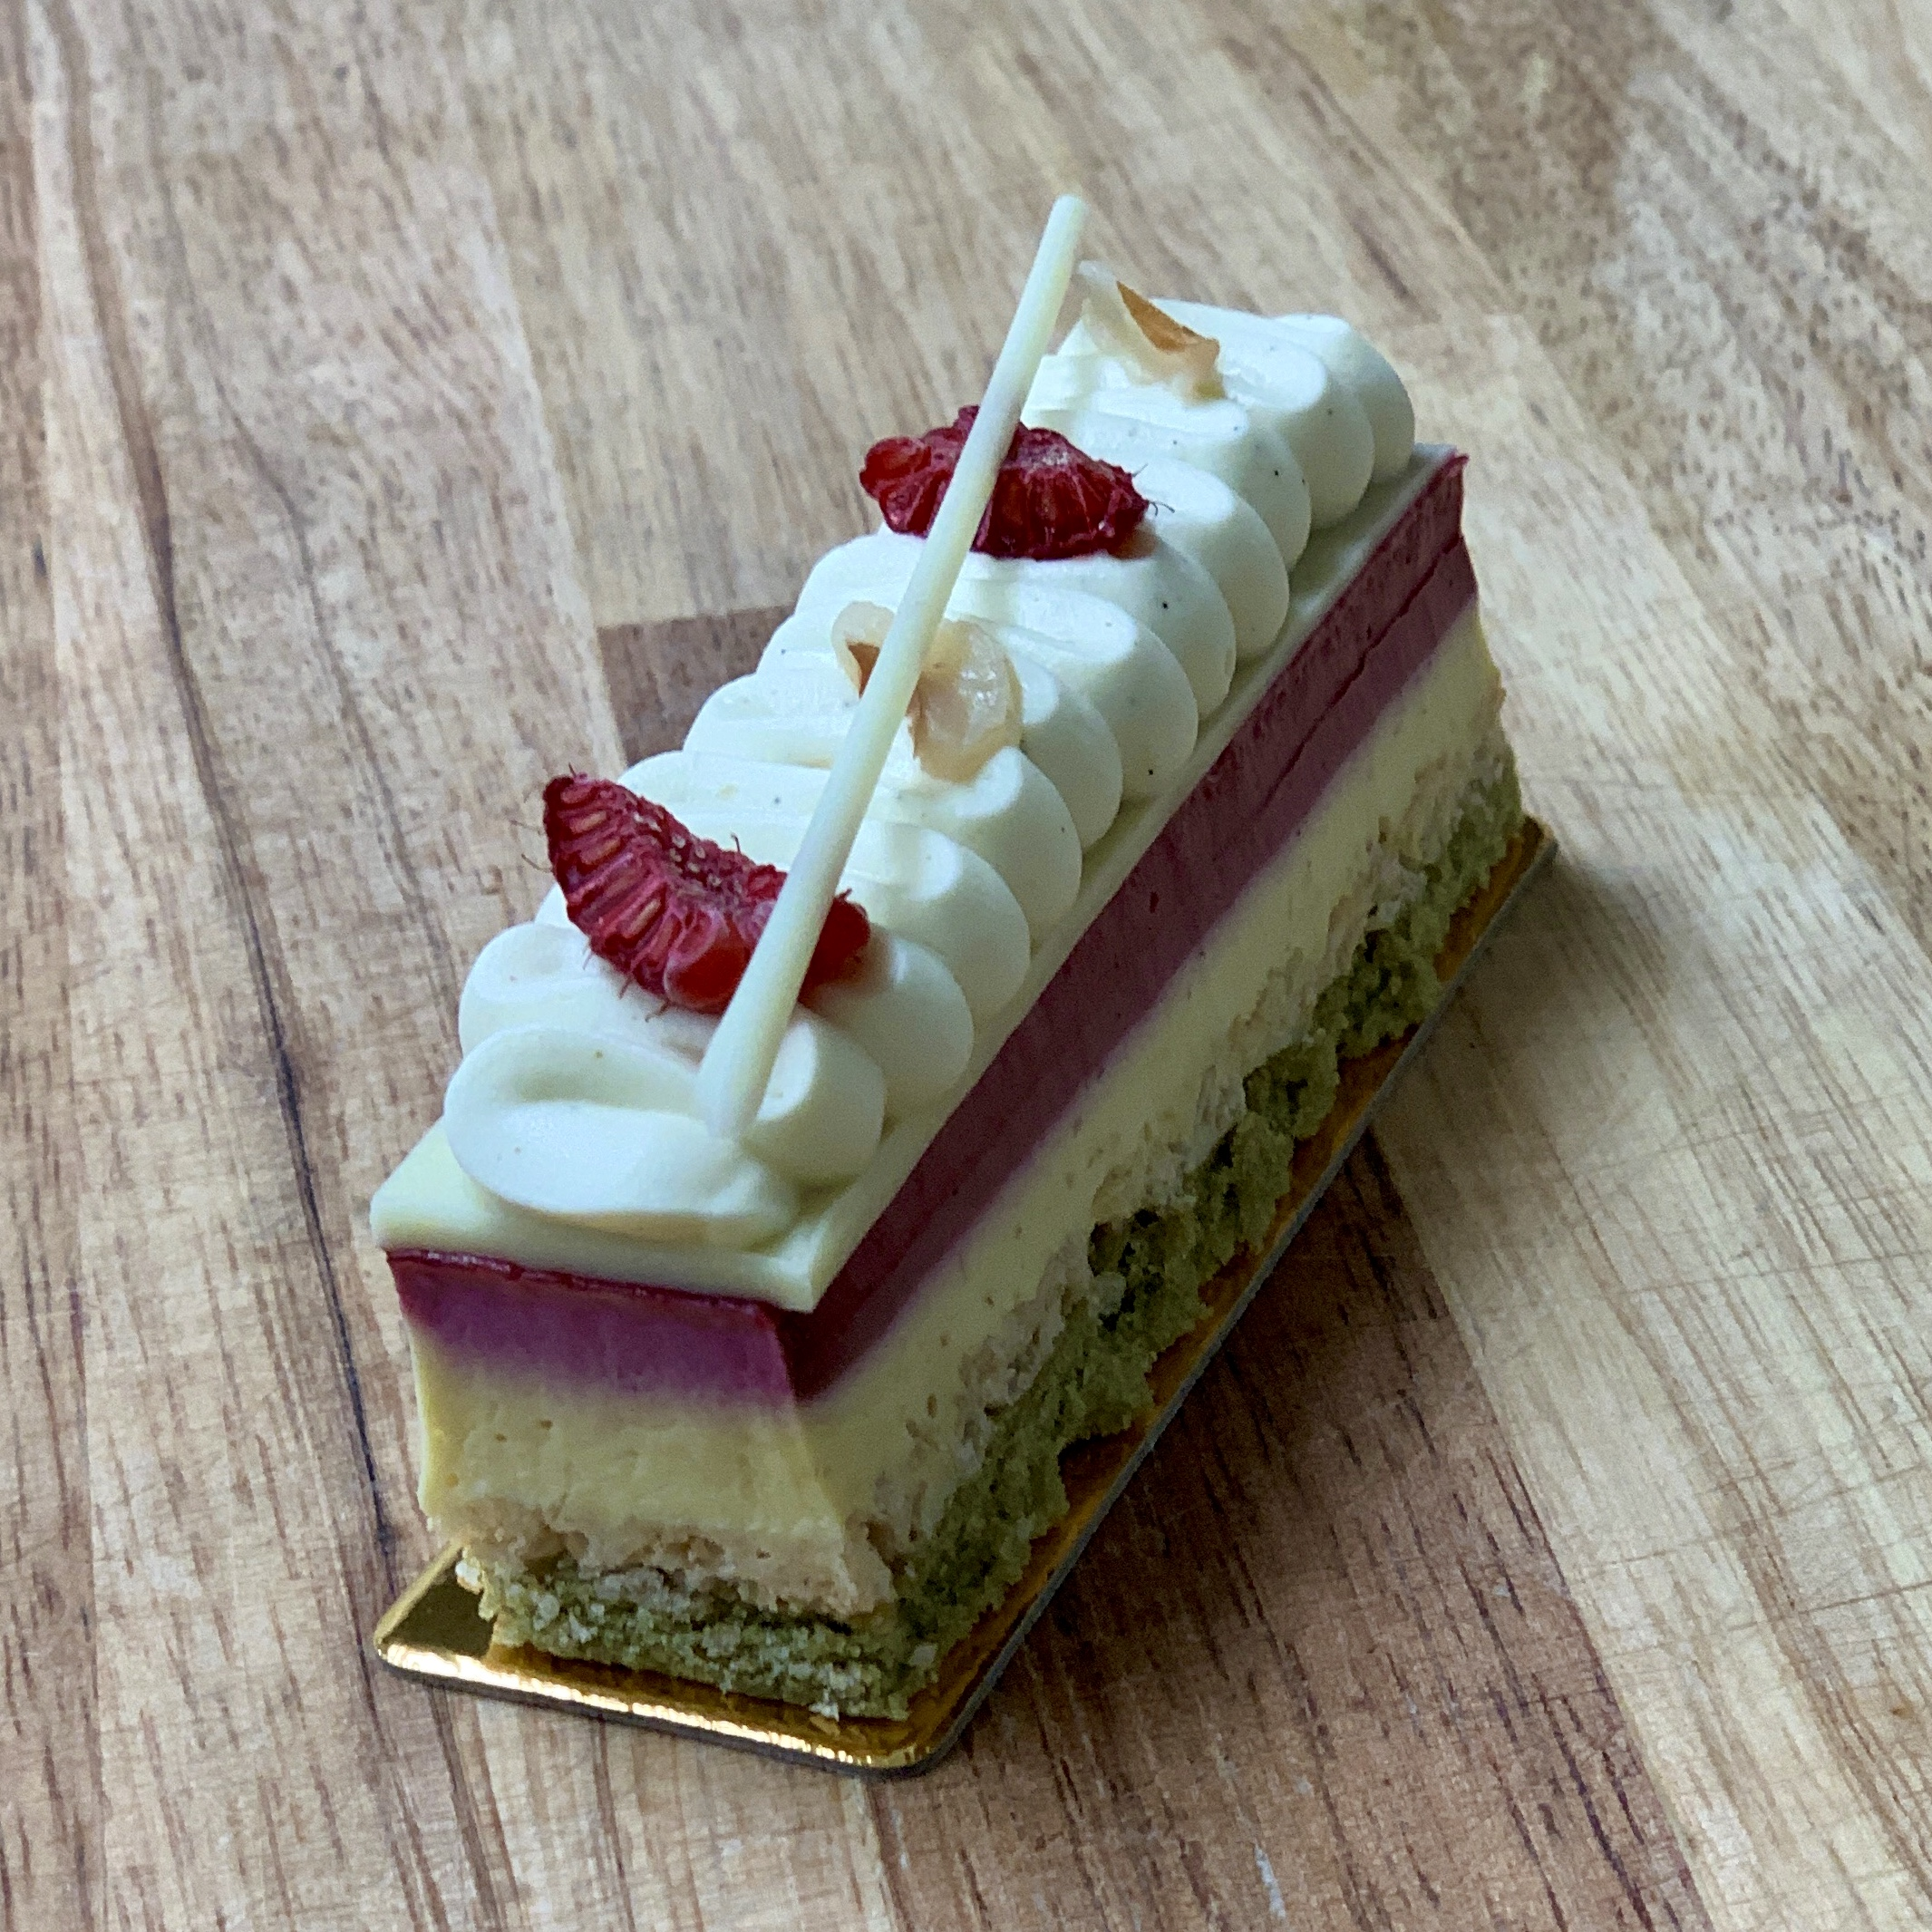 Valentine's day special cake raspberry lychee napoleon, valentine's day sweet, valentine's day cake, valentine's day gift, valentine's day gift ideas, atelier monnier french bakery miami